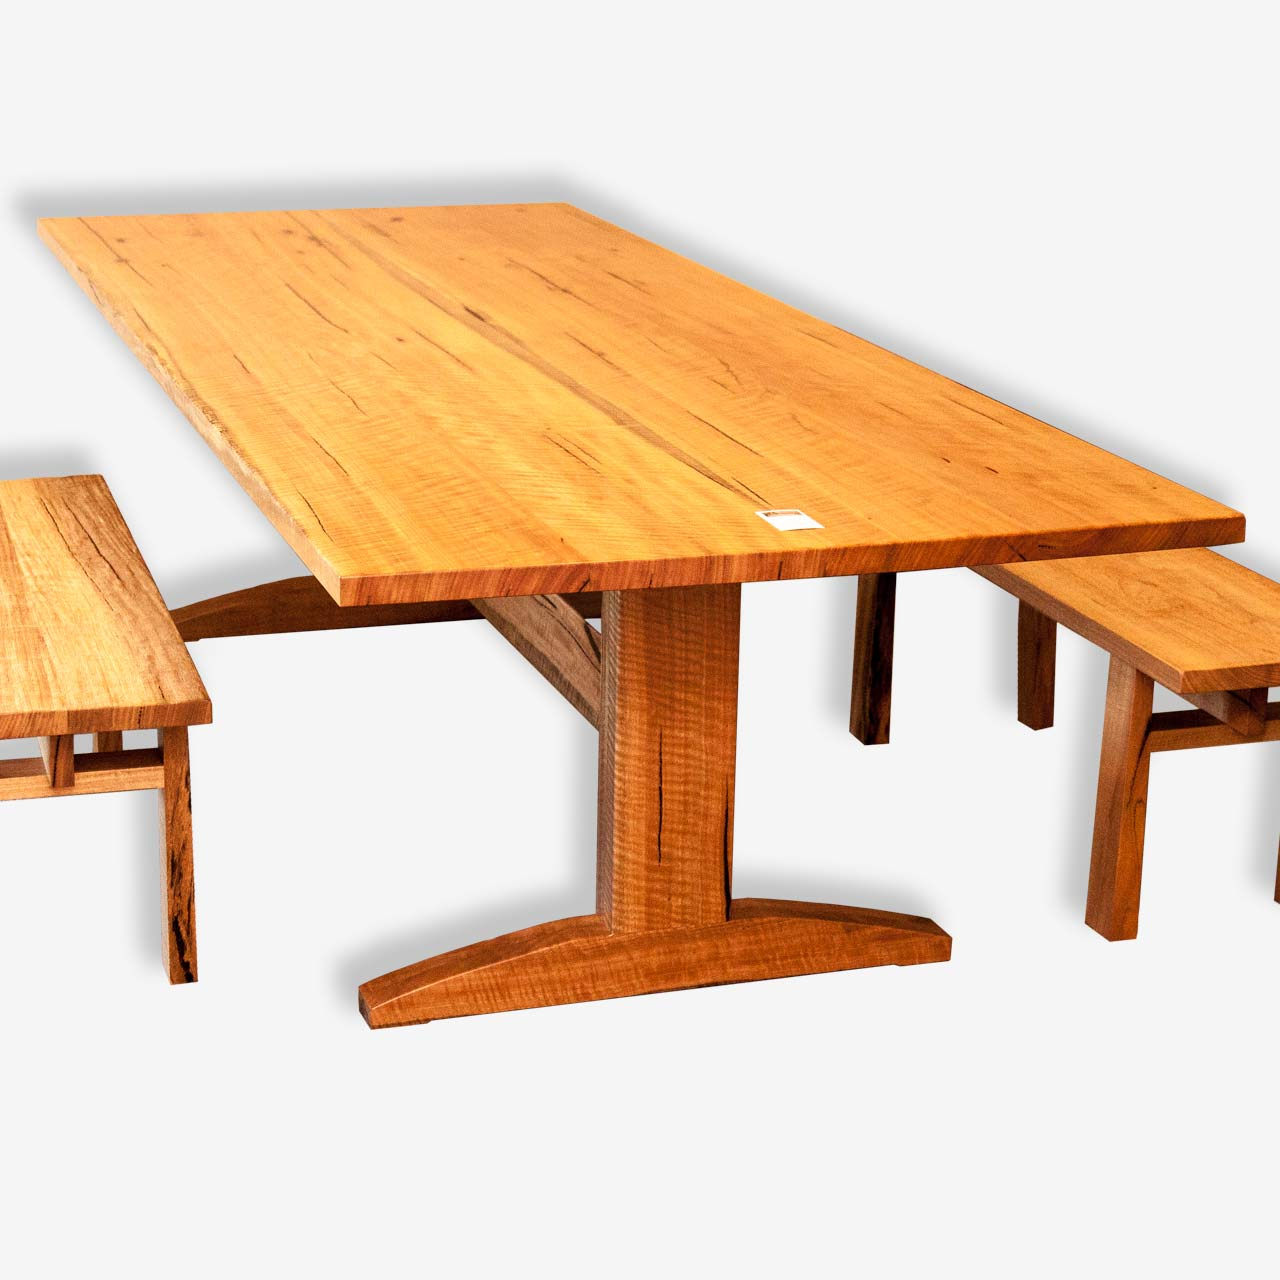 Dining Tables Perth Dining Table Perth Dining Tables Trestle Dining Table In Marri Treeton